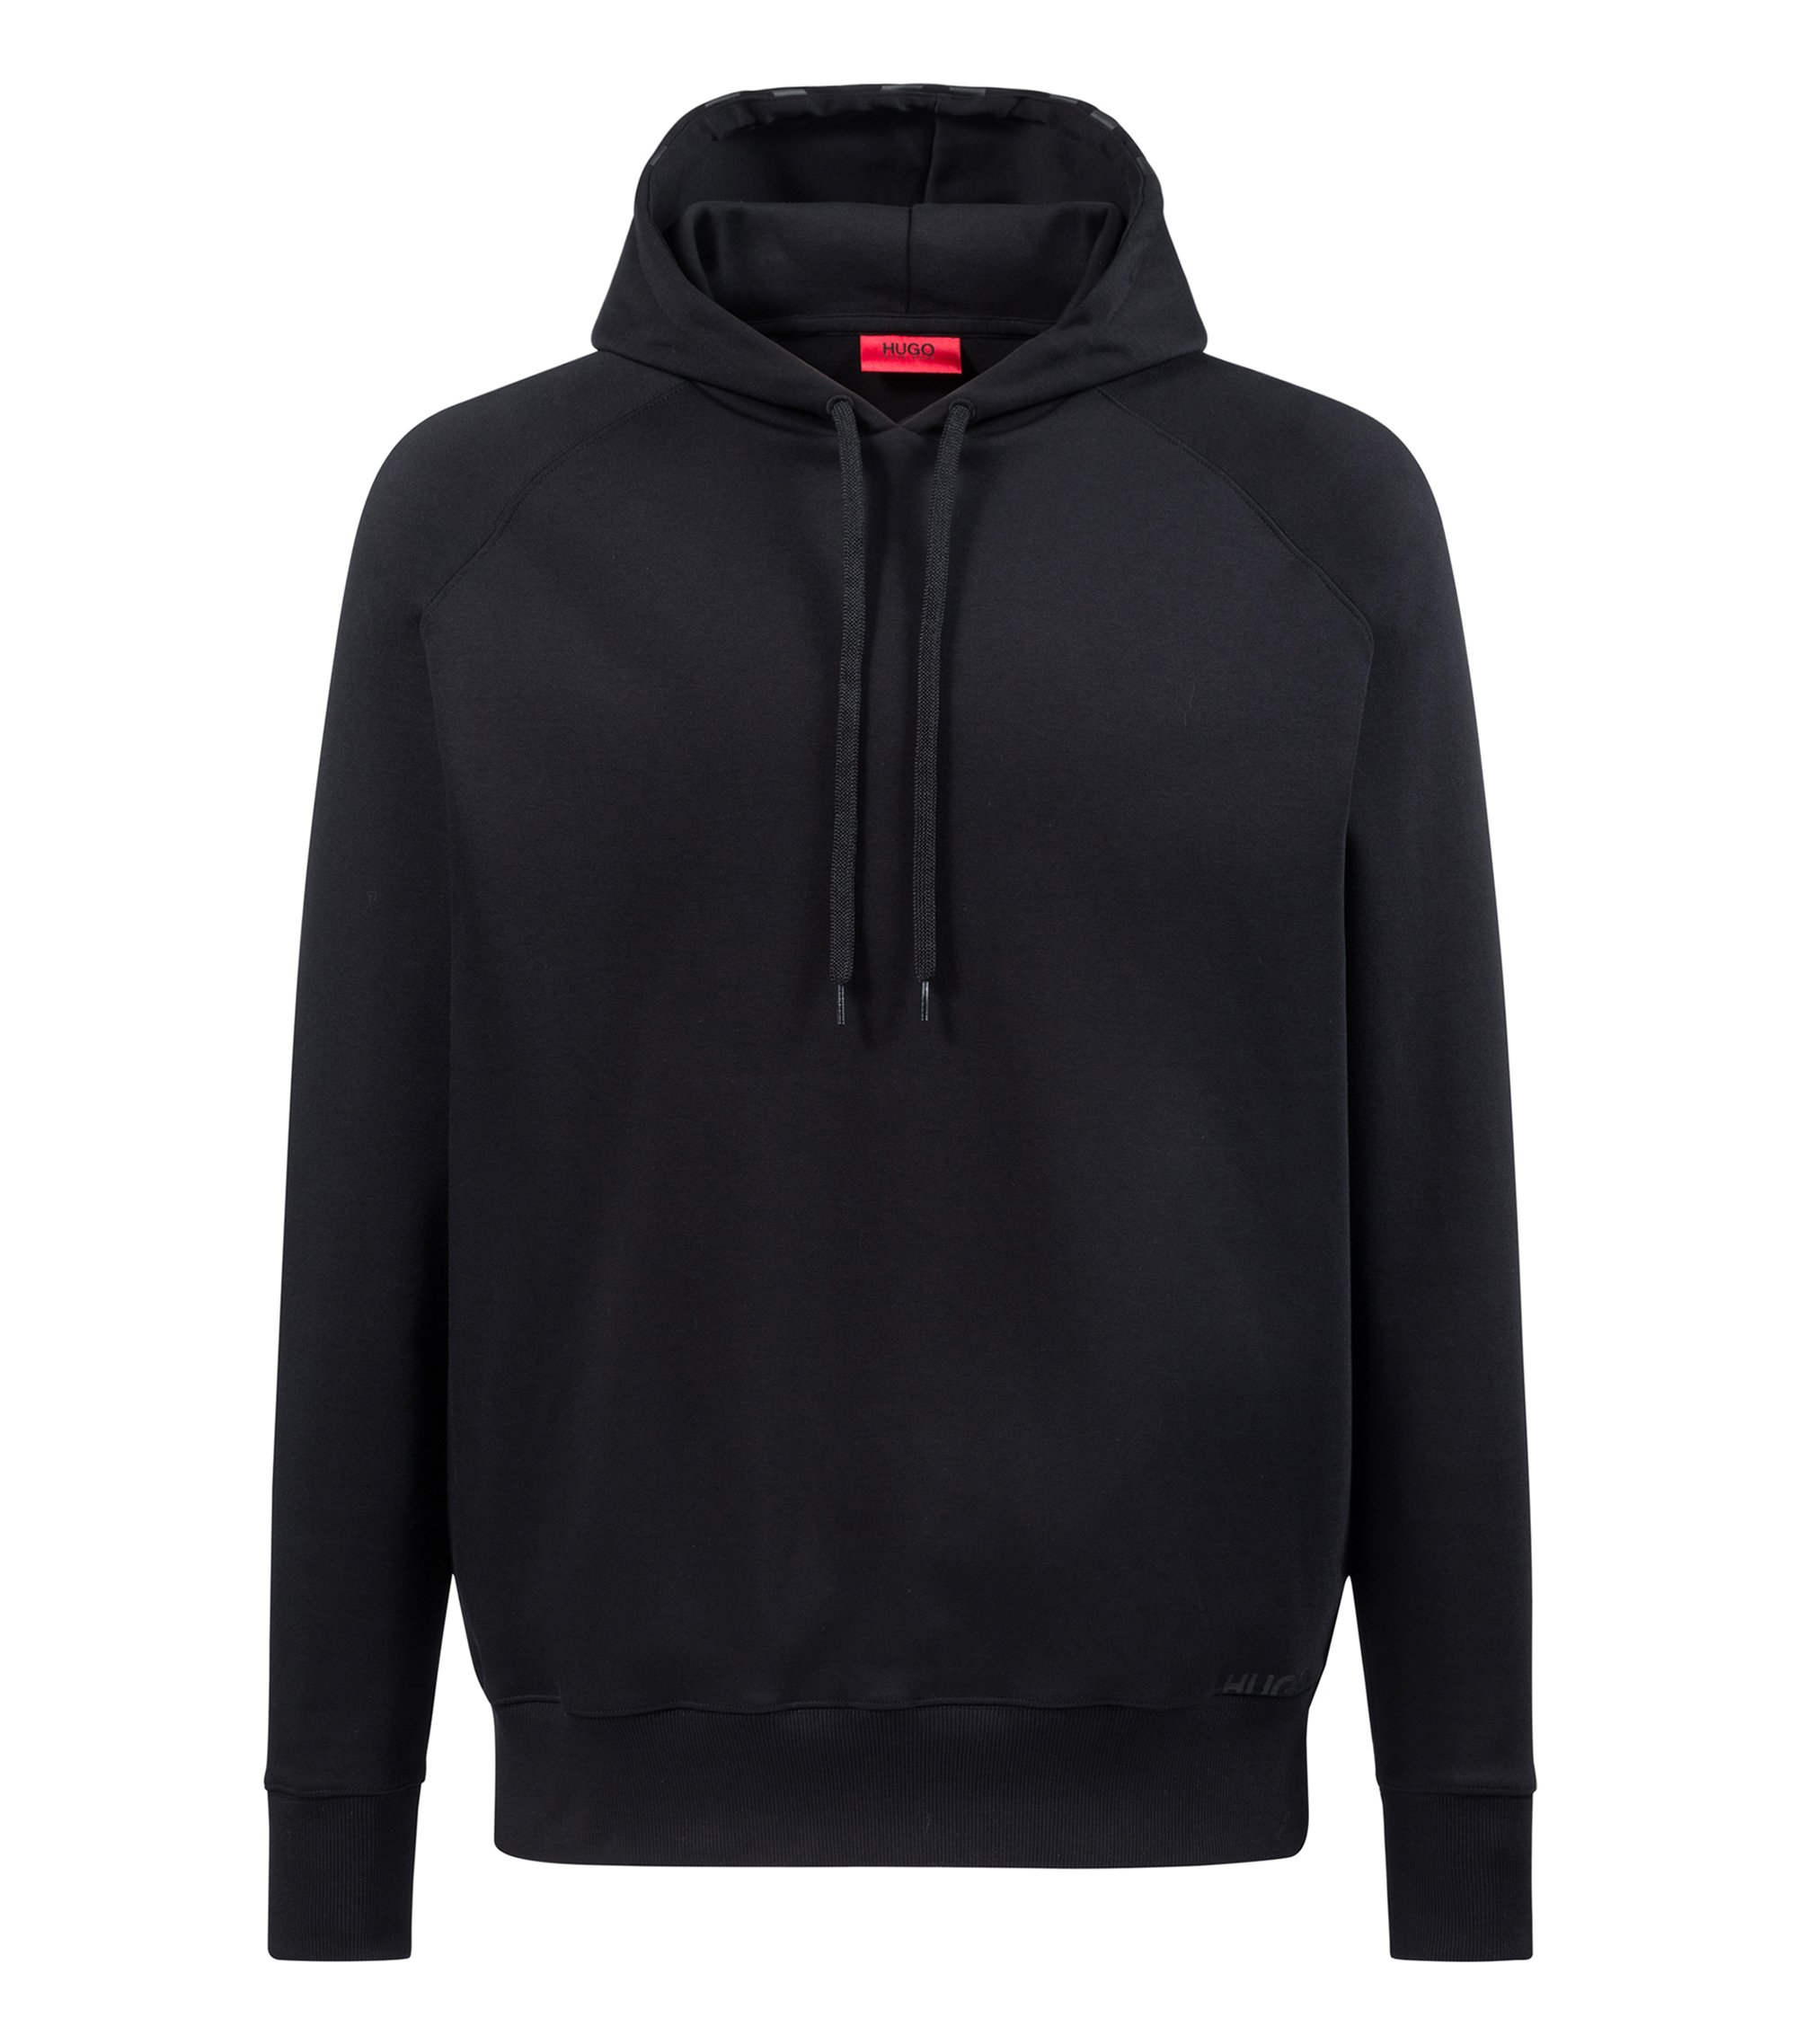 Sweat Oversized Fit en coton interlock avec capuche à logo, Noir